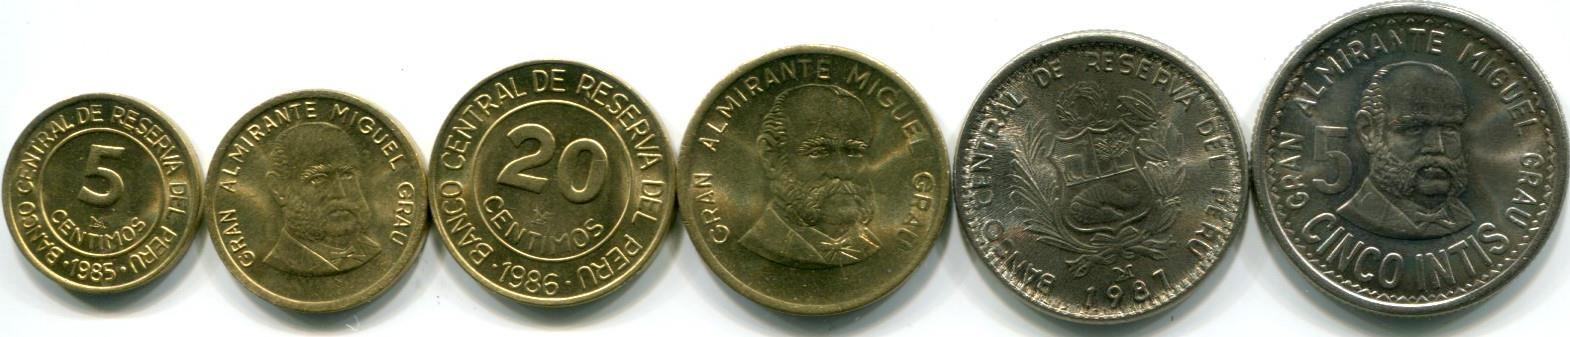 4 Available Circulated 1 Coin Only 1940 Chile 20 Centavos